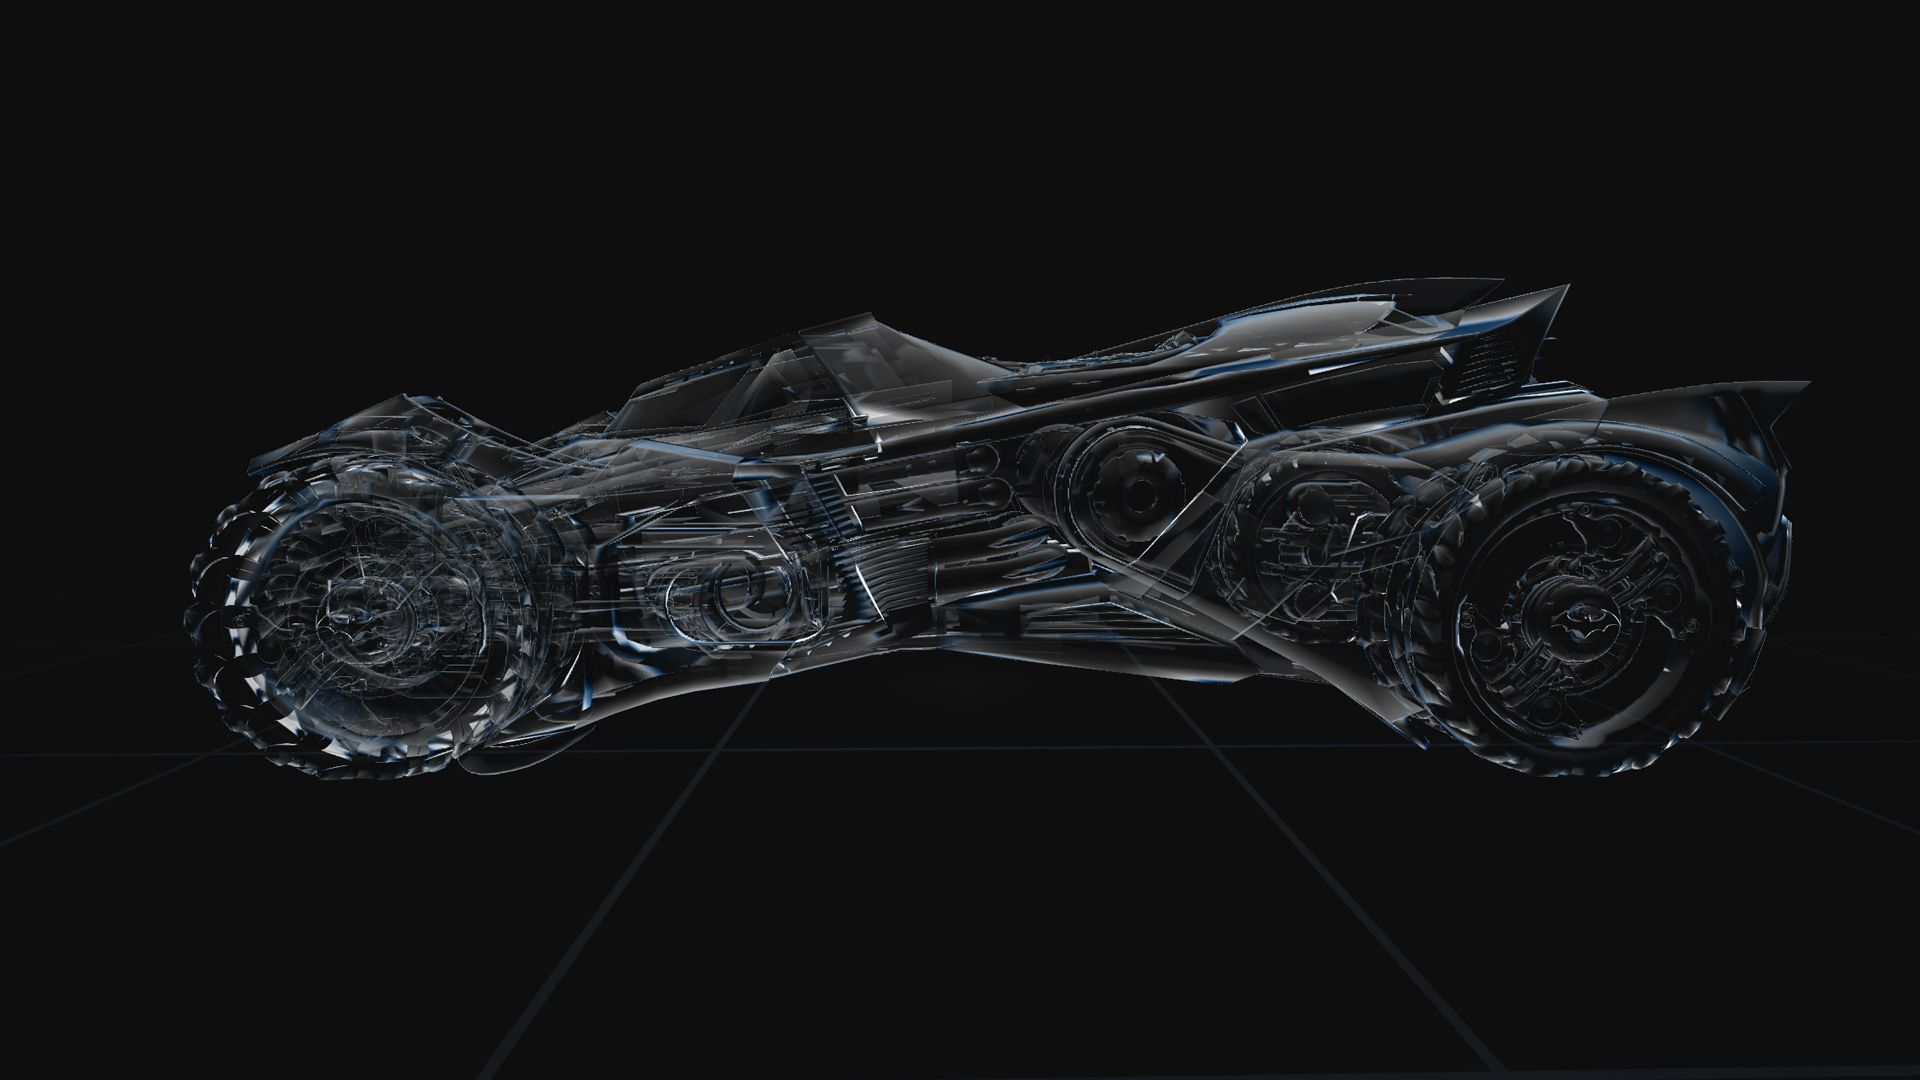 Design Development Of The Batman Arkham Knight Batmobile WebGL Experience